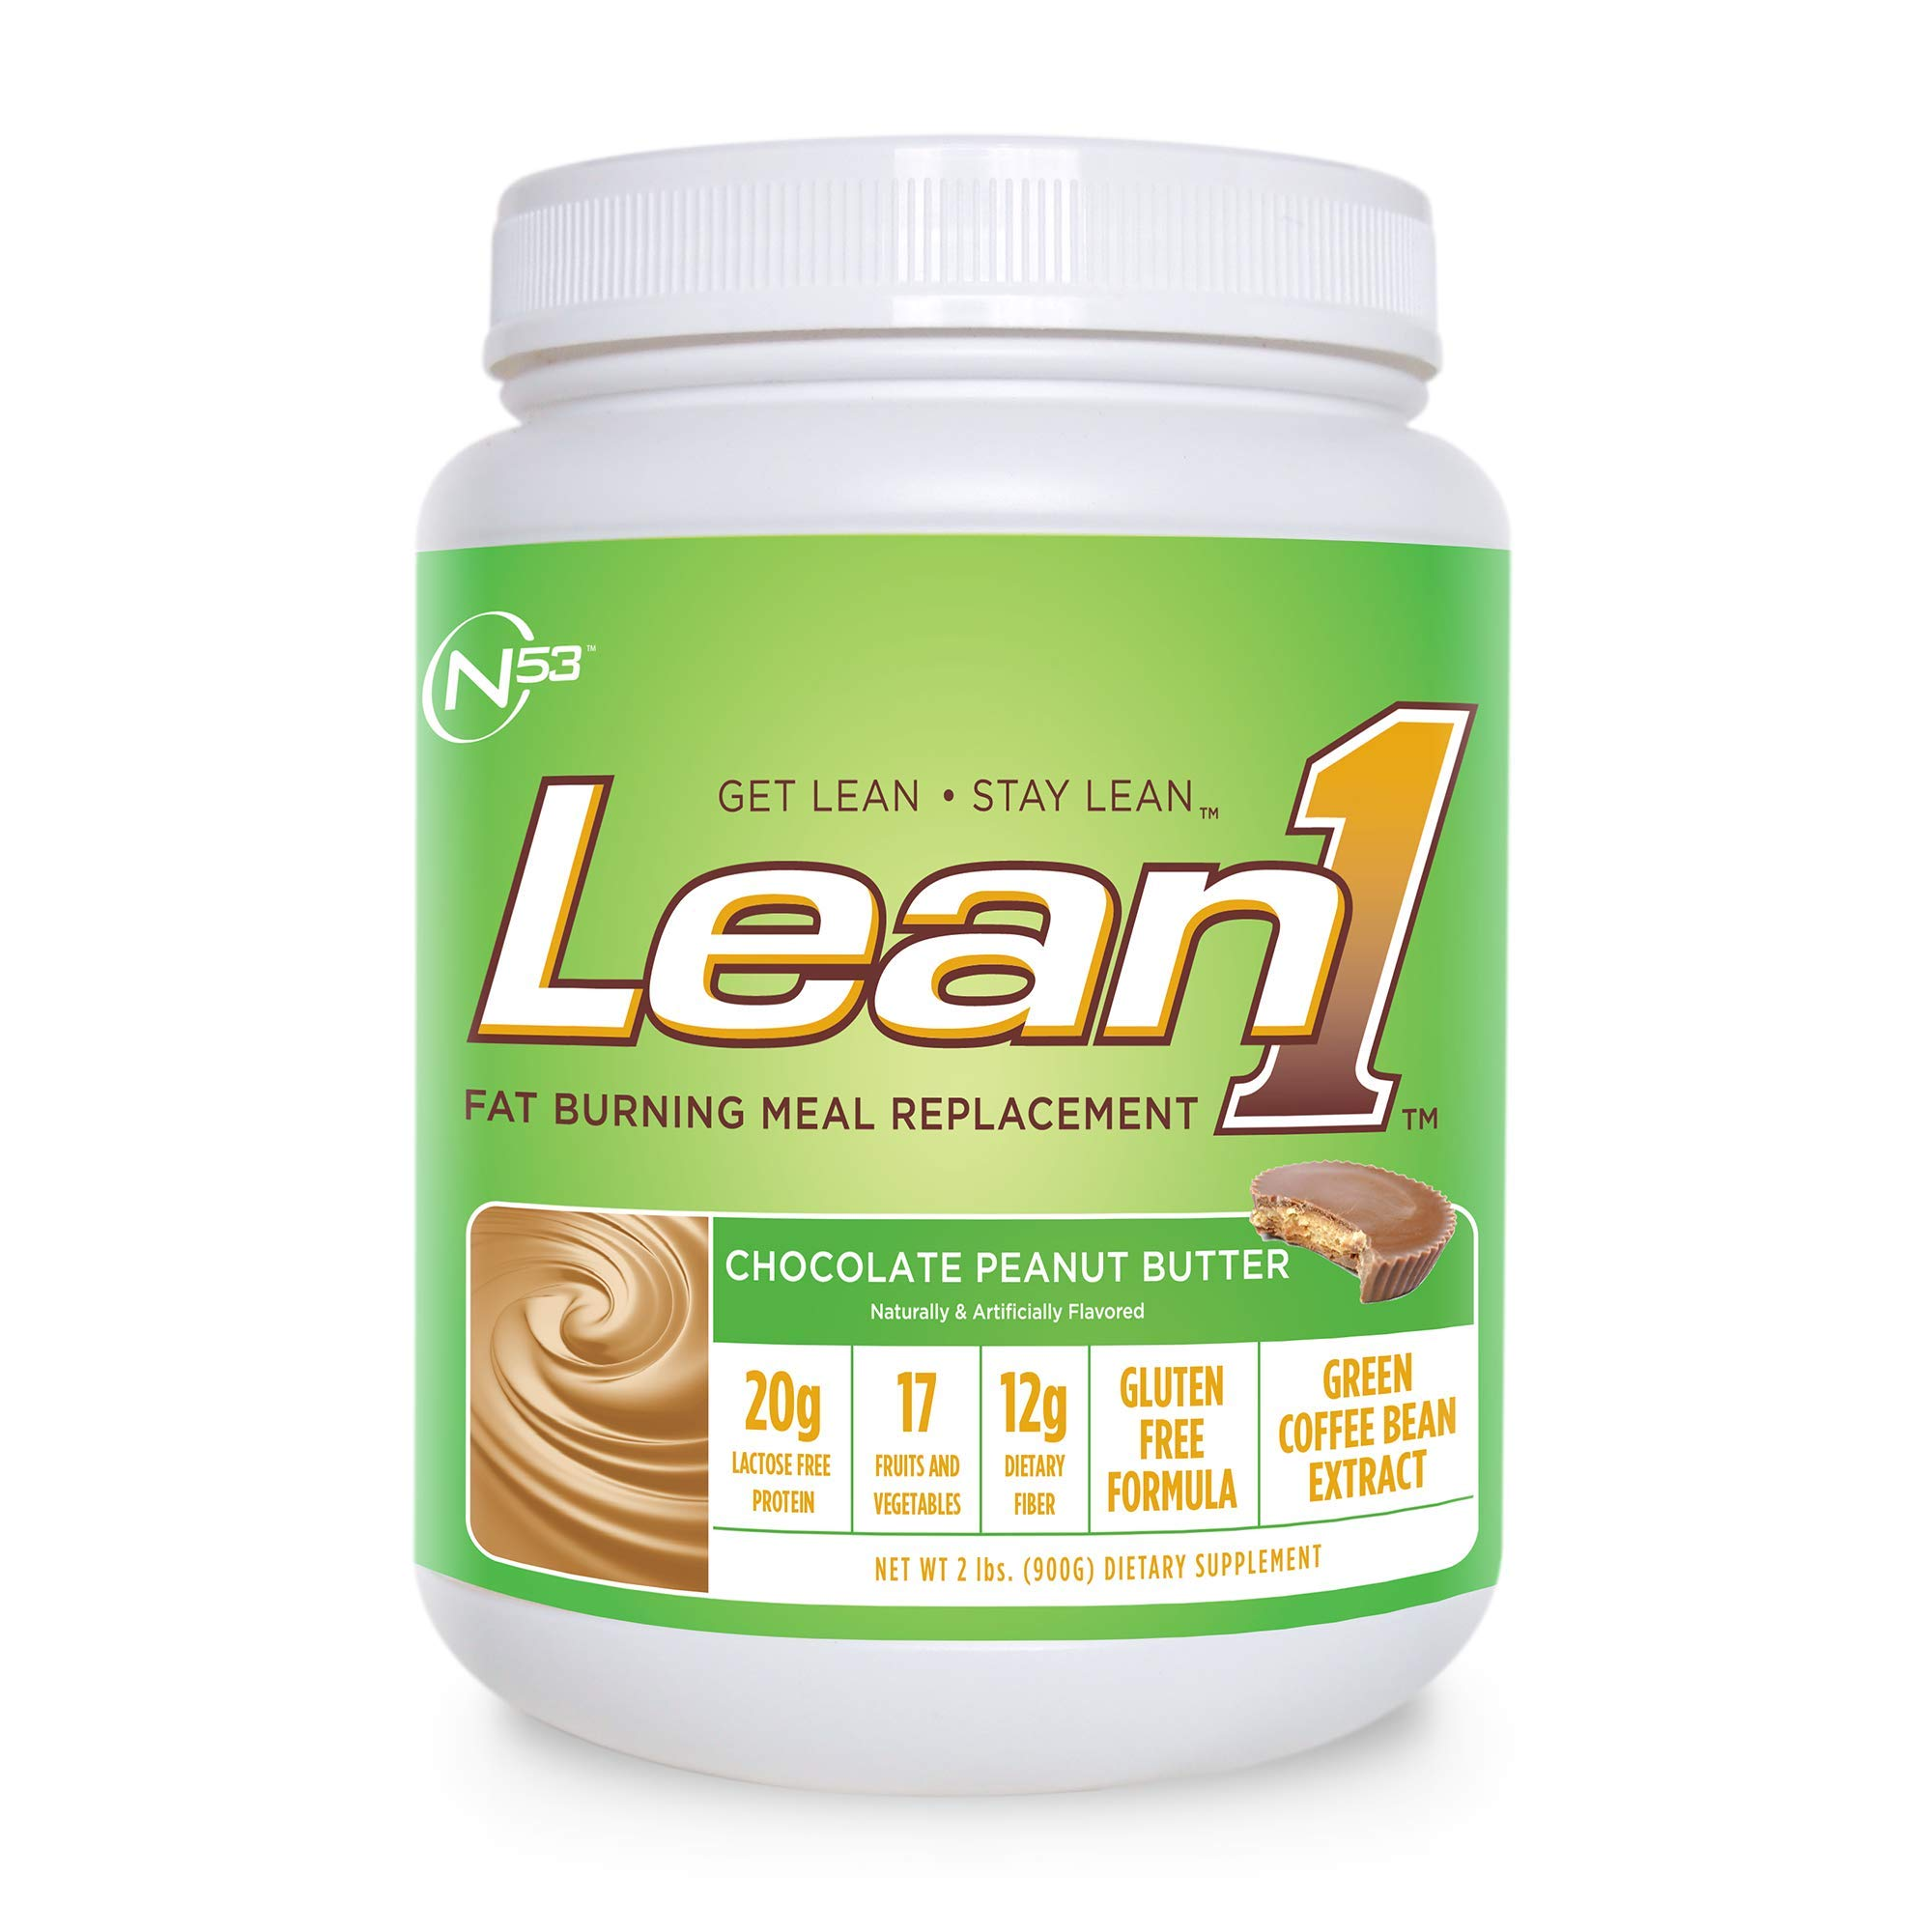 Nutrition 53 Lean 1 Dietary Supplement, Chocolate Peanut Butter, 1.98 lb by LEAN1